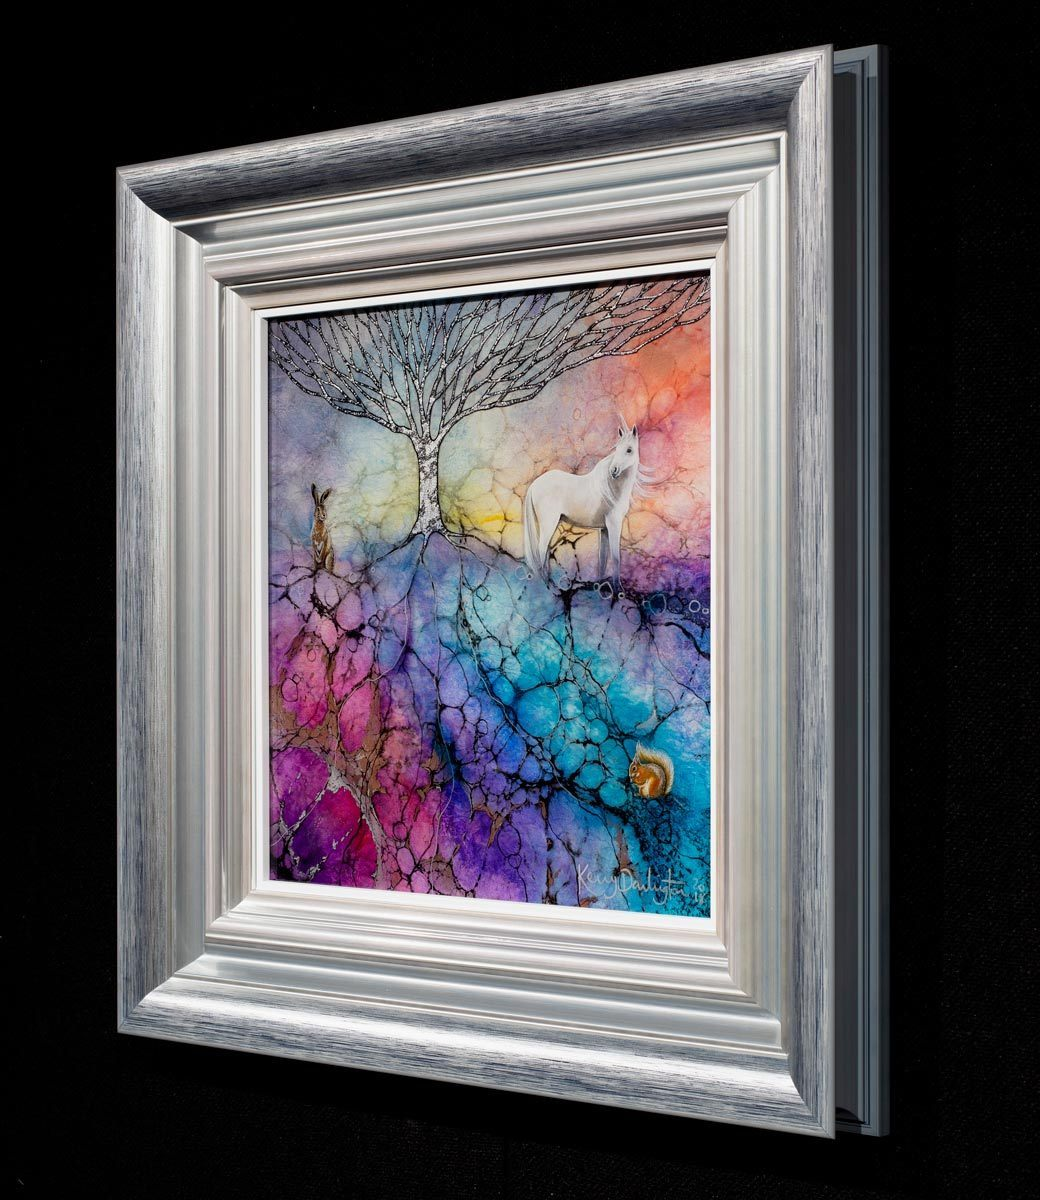 Eternity in the Hour - Original Kerry Darlington Framed